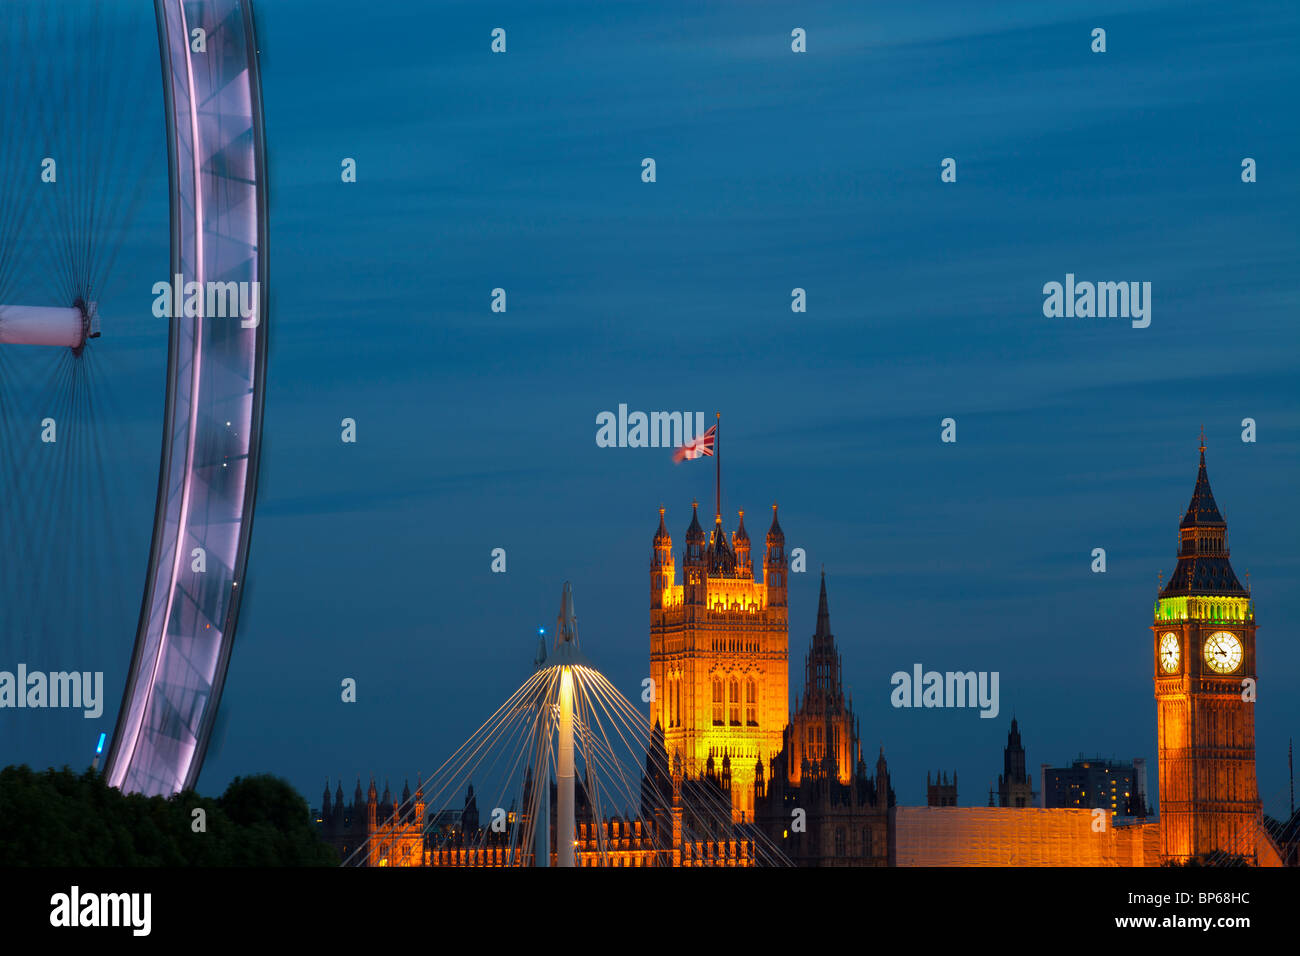 Millennium wheel and Houses of Parliament at dusk, London, UK. - Stock Image